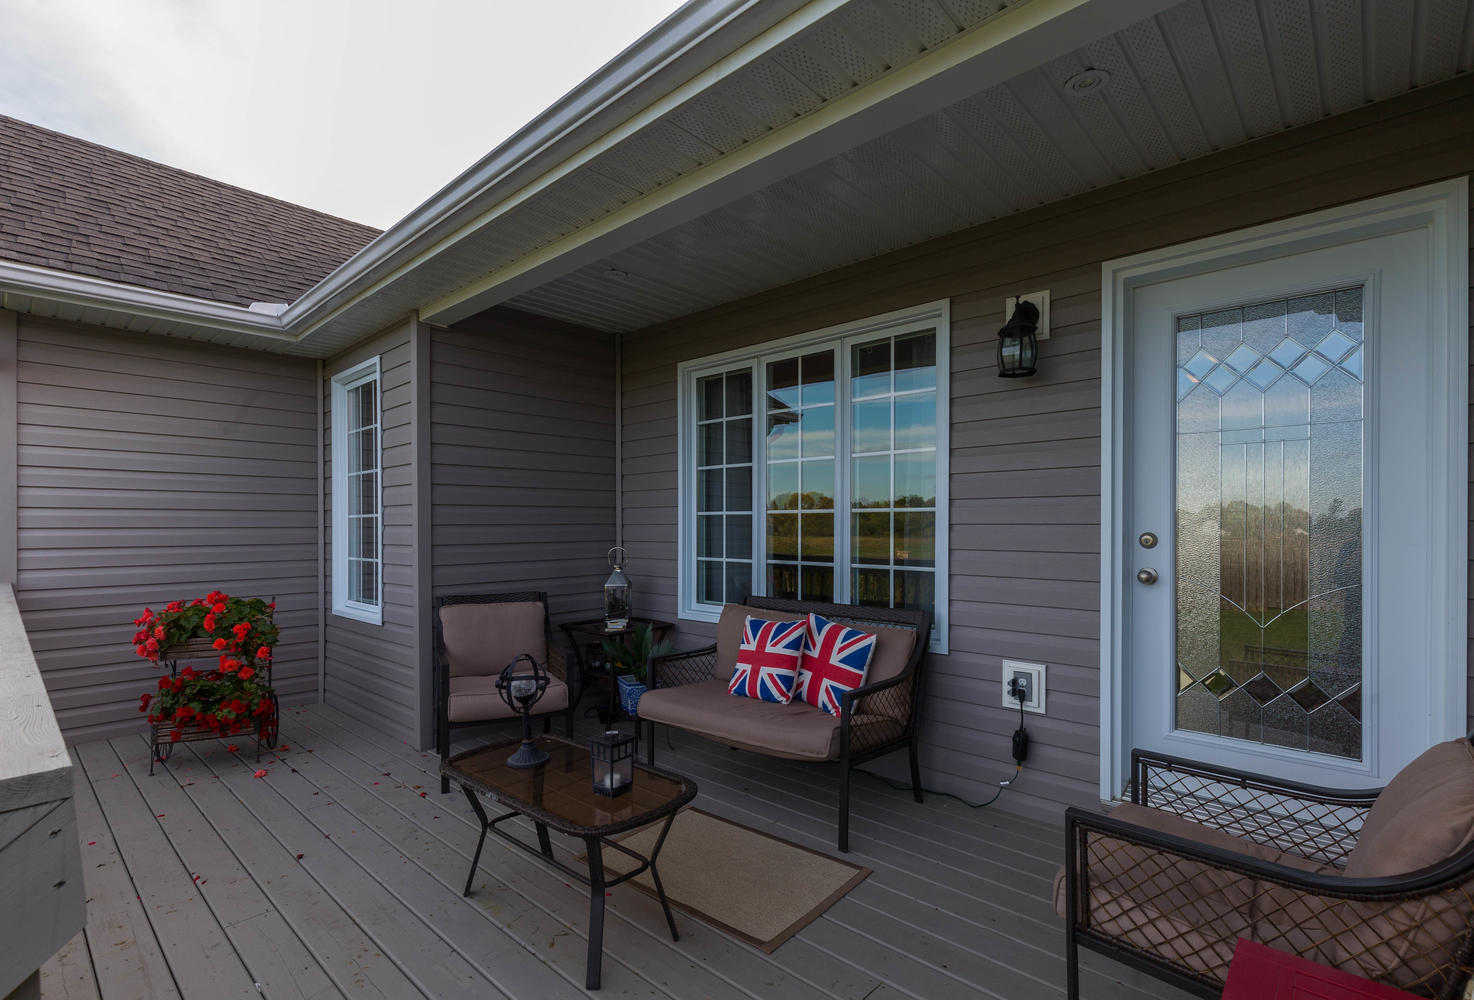 Large partially covered deck perfect for BBQ'n and entertaining.  Complimented by a Great open outdoor space in the back.  Peaceful and quiet.